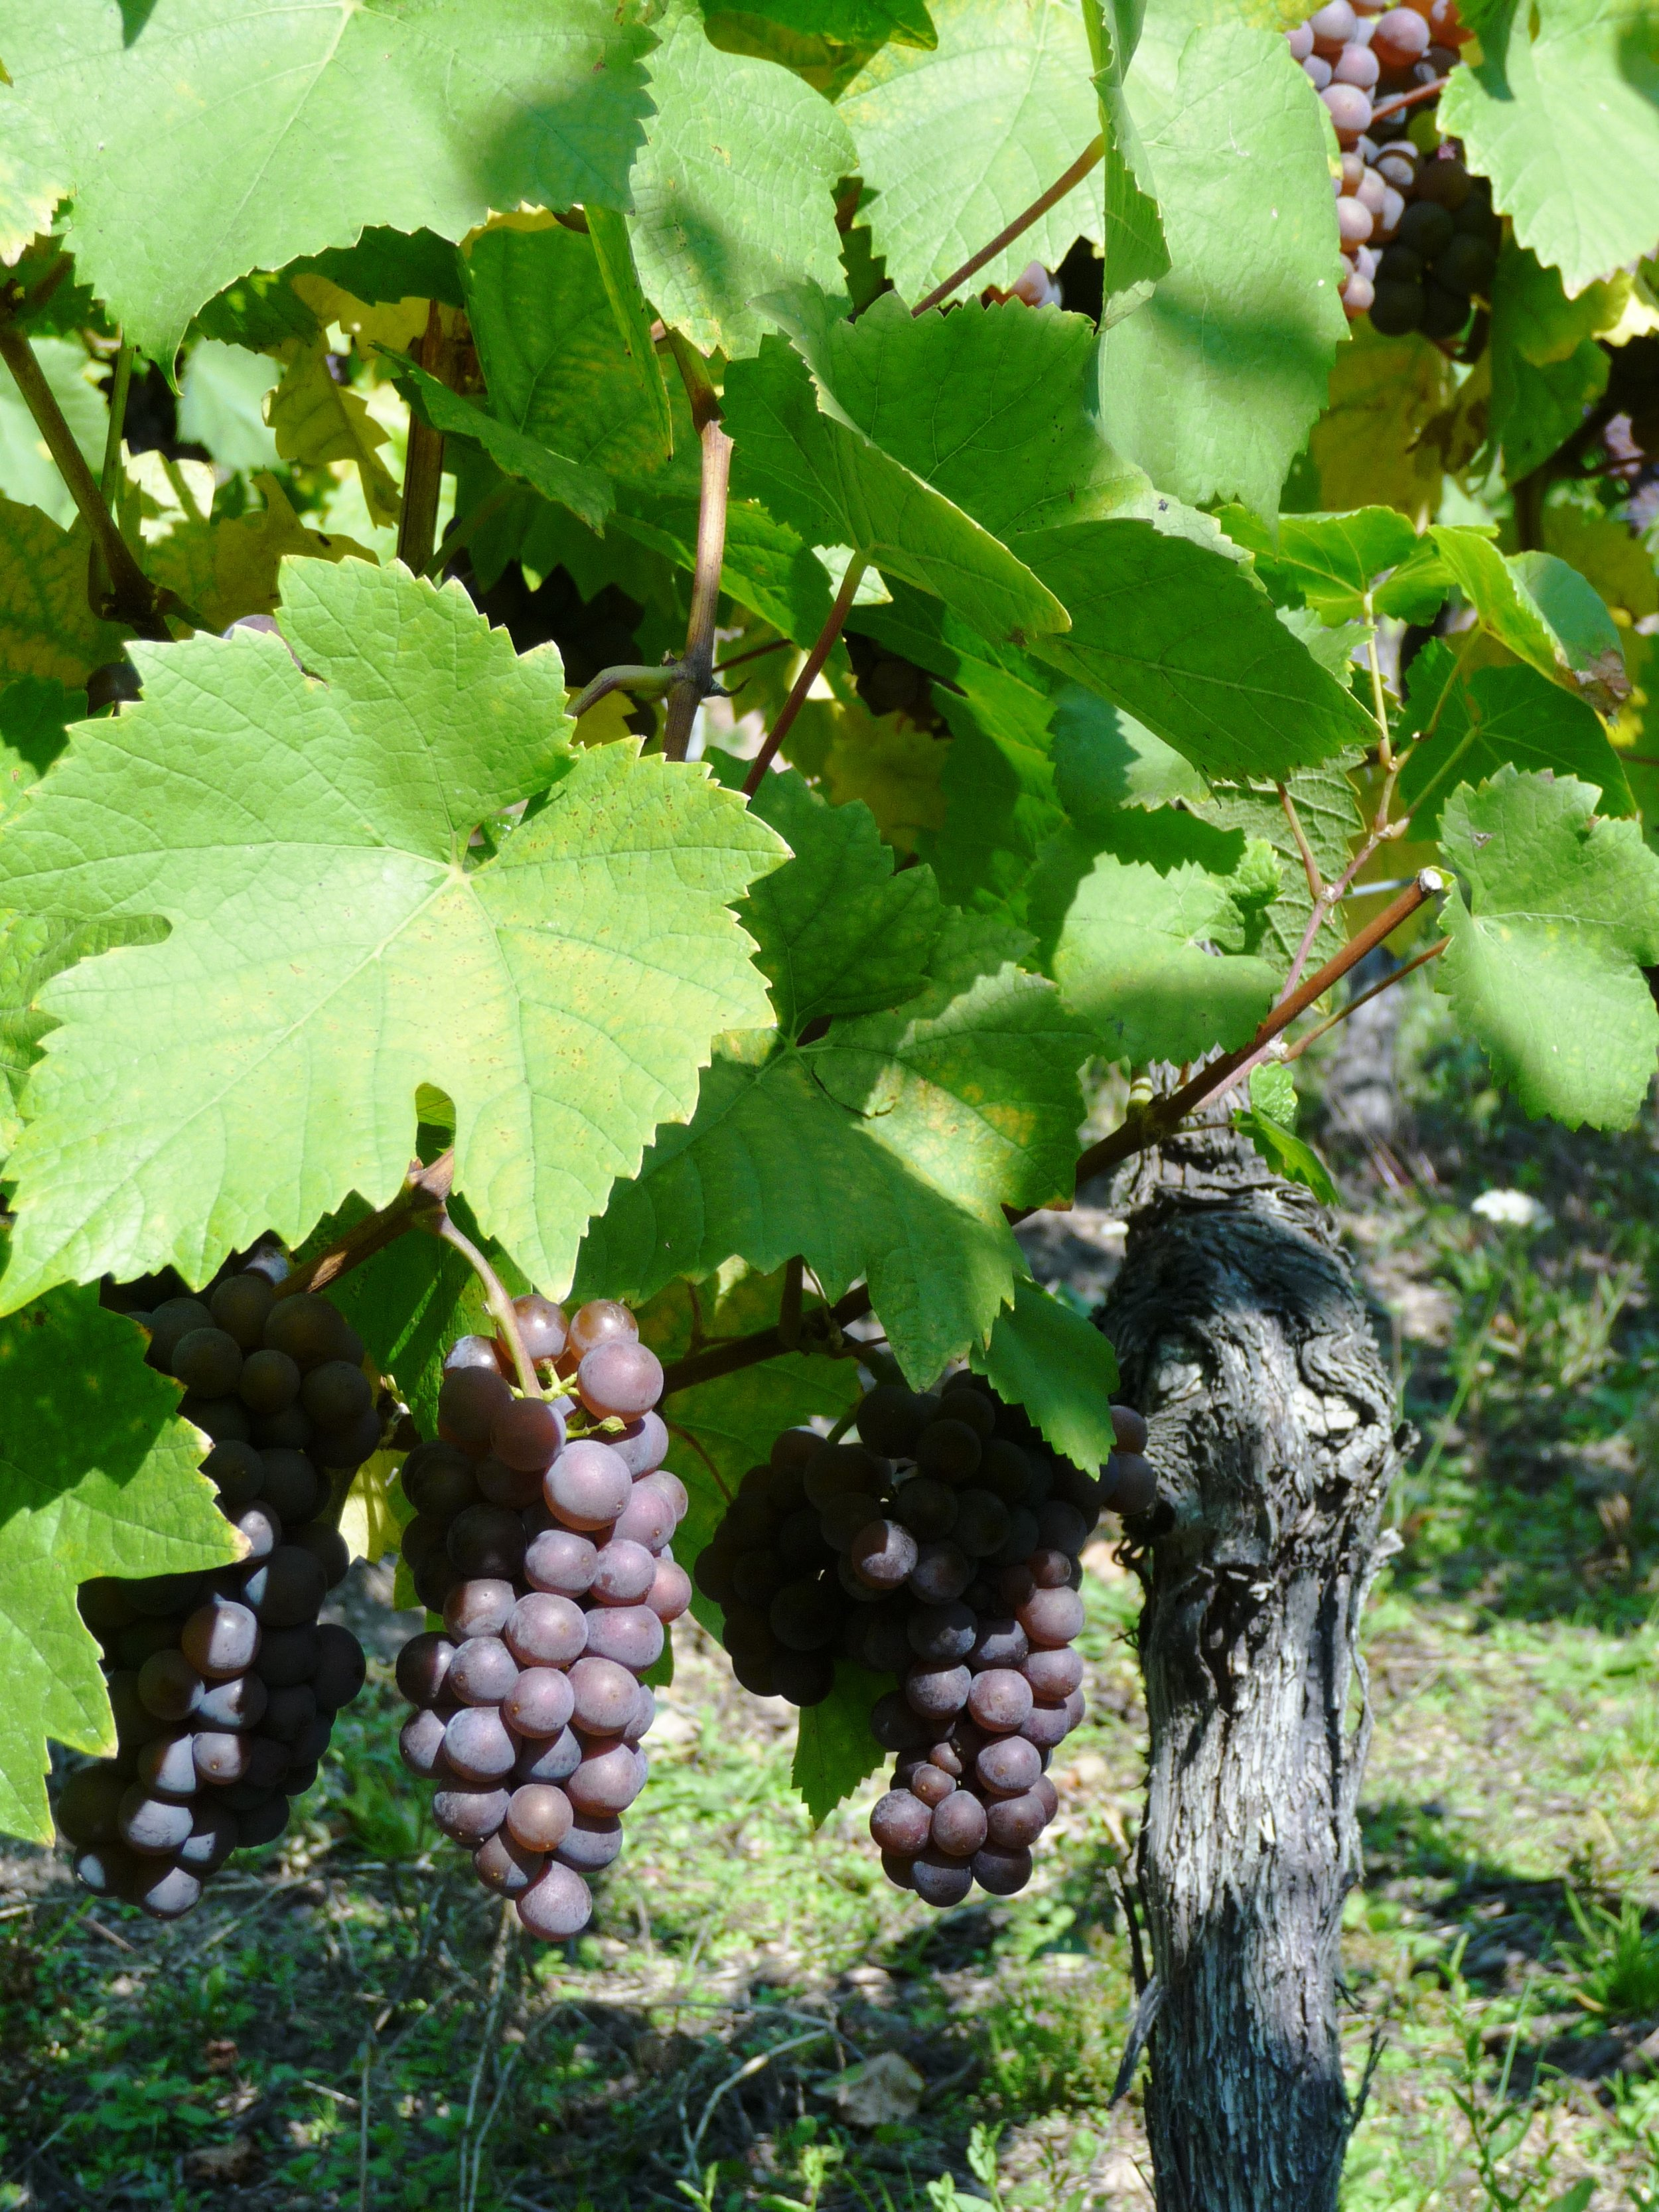 Pinot gris grapes in the Grand Cru Wineck-Schlossberg along the Alsace-route-des-vines, a stone's throw from the Wineck Castle ruins (circa 1200).